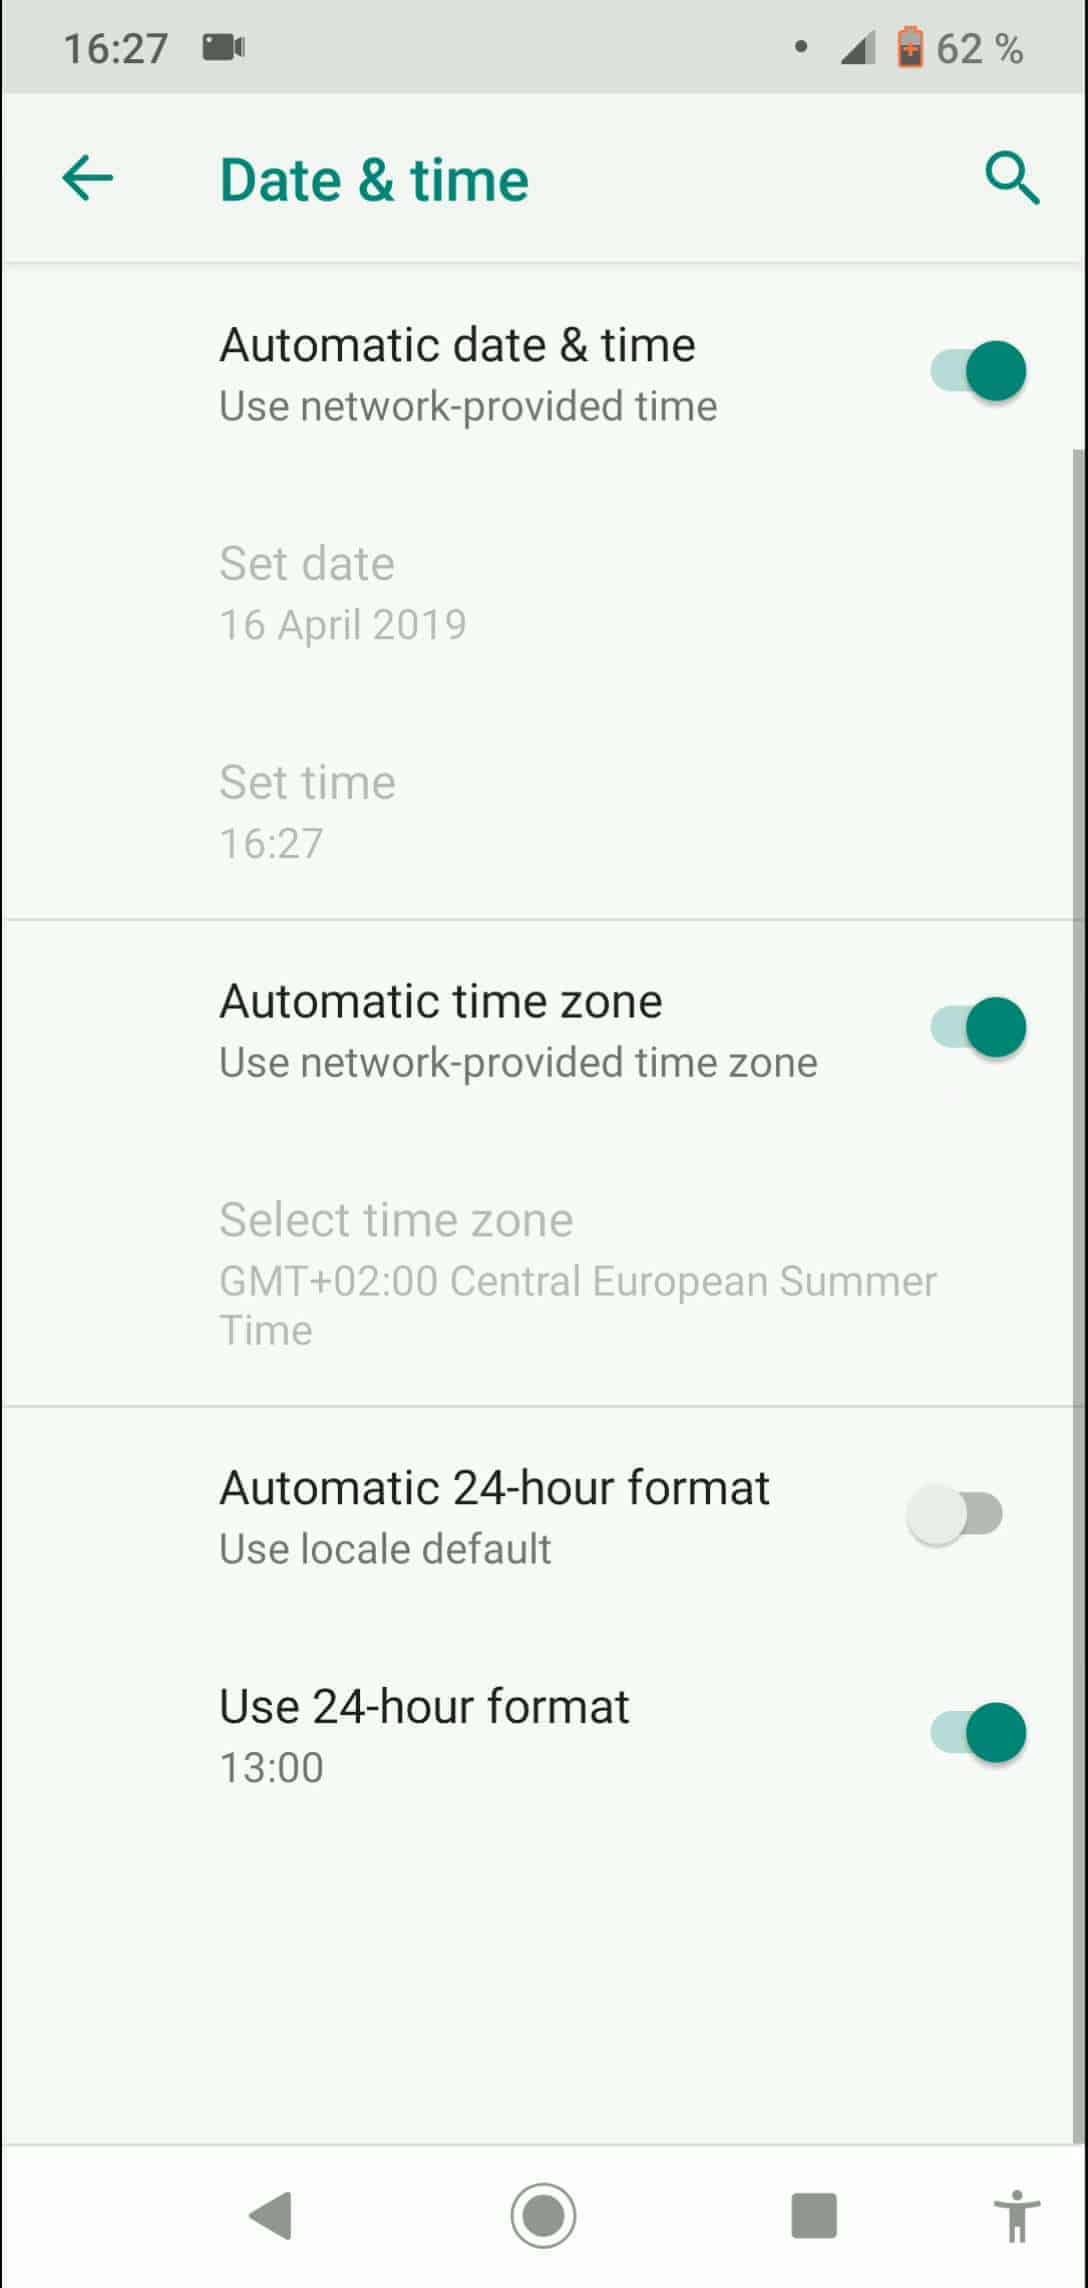 Step 4: Activate or deactivate Automatic time zone